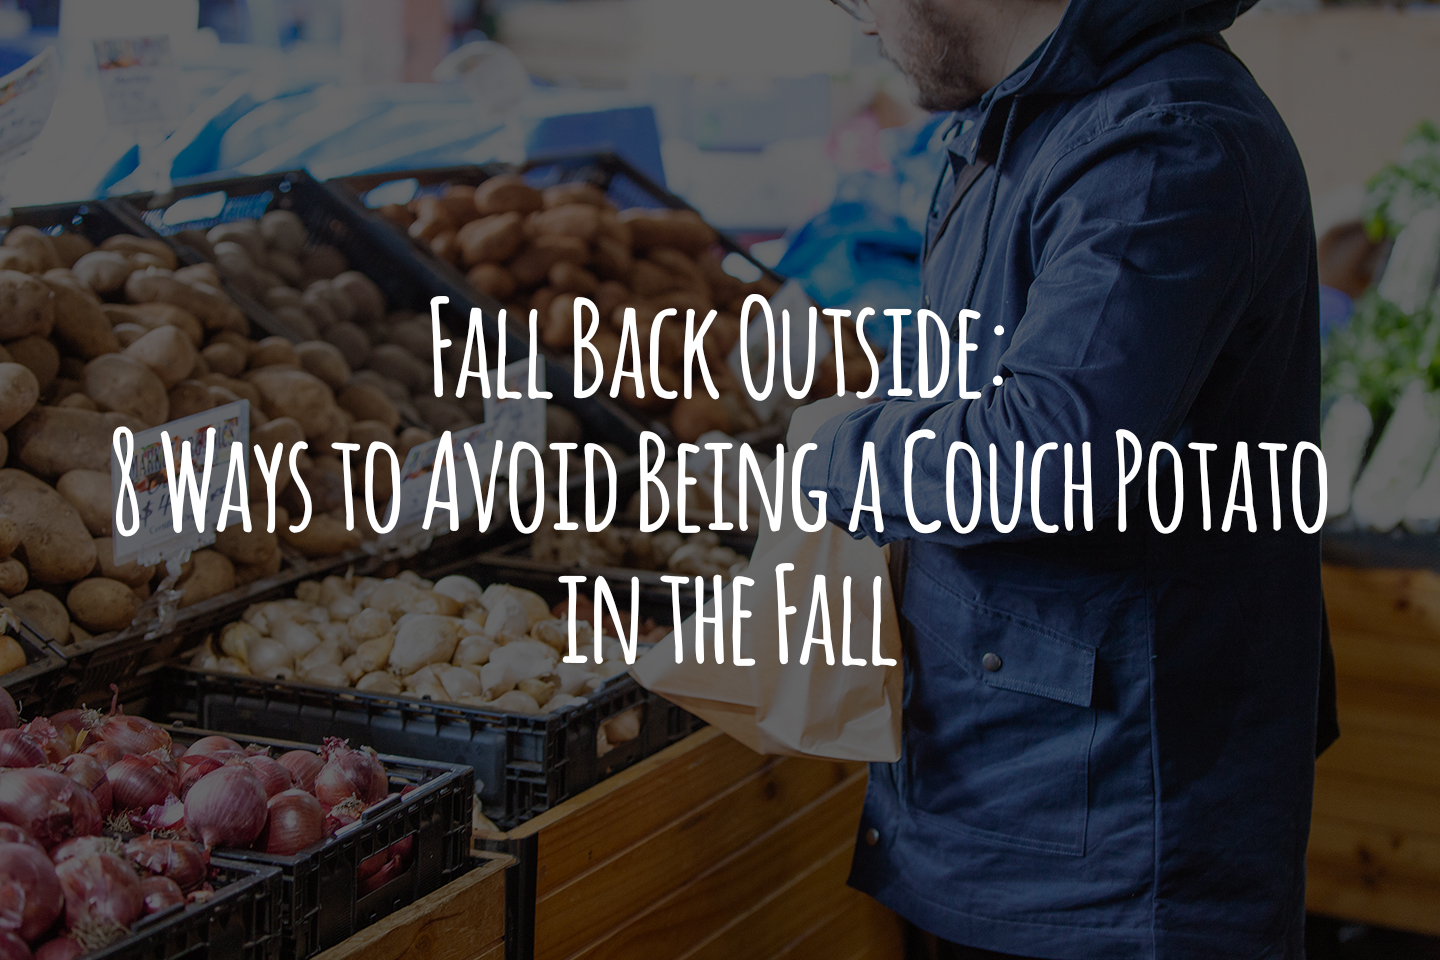 Fall Back Outside: 8 Ways to Avoid Being a Couch Potato in the Fall